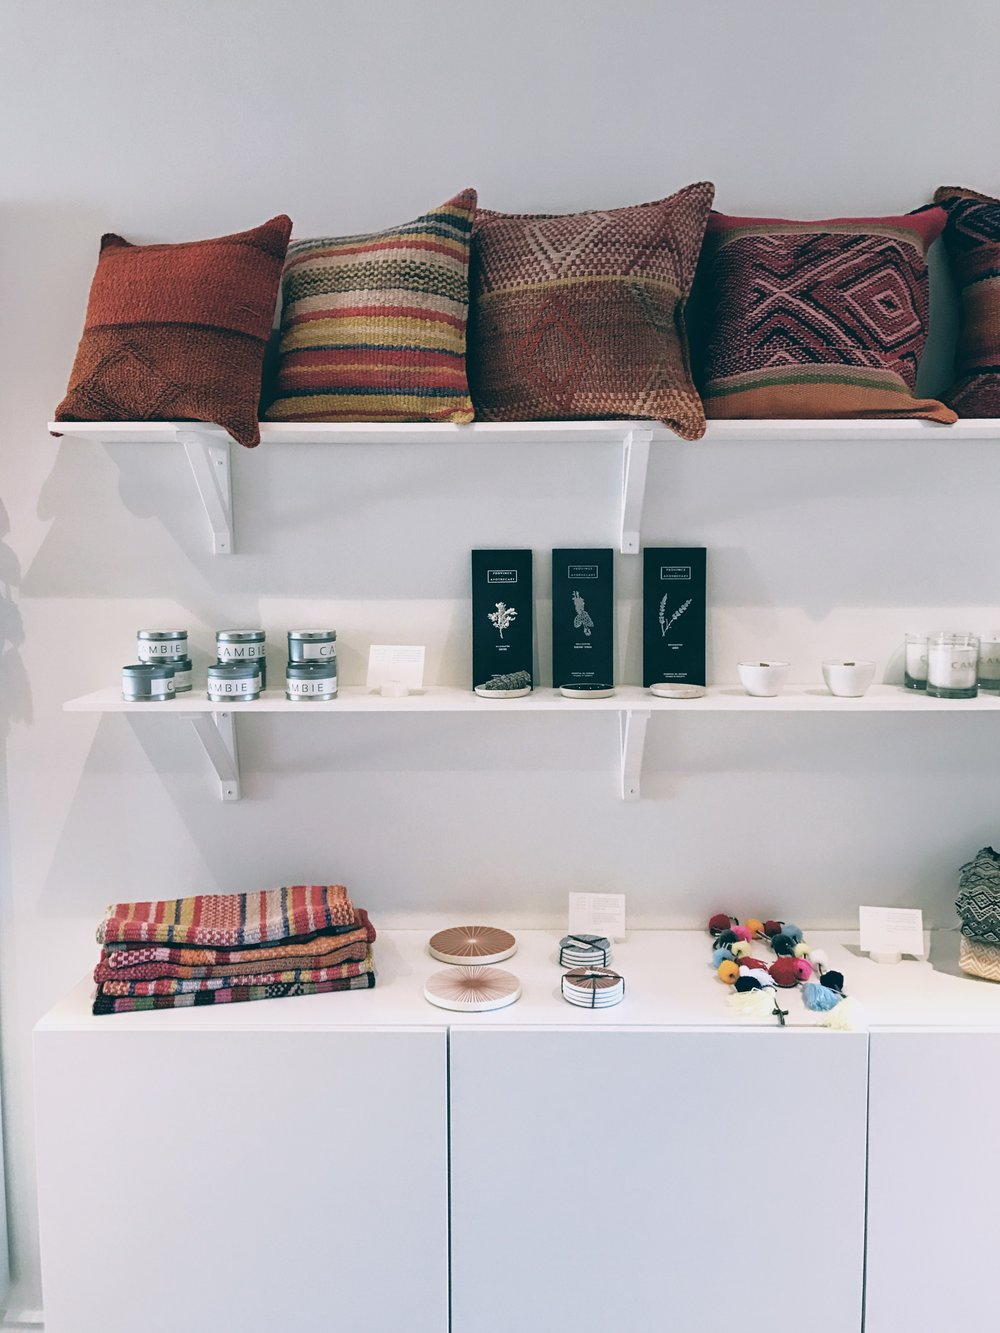 Cambie homeware on Queen St West